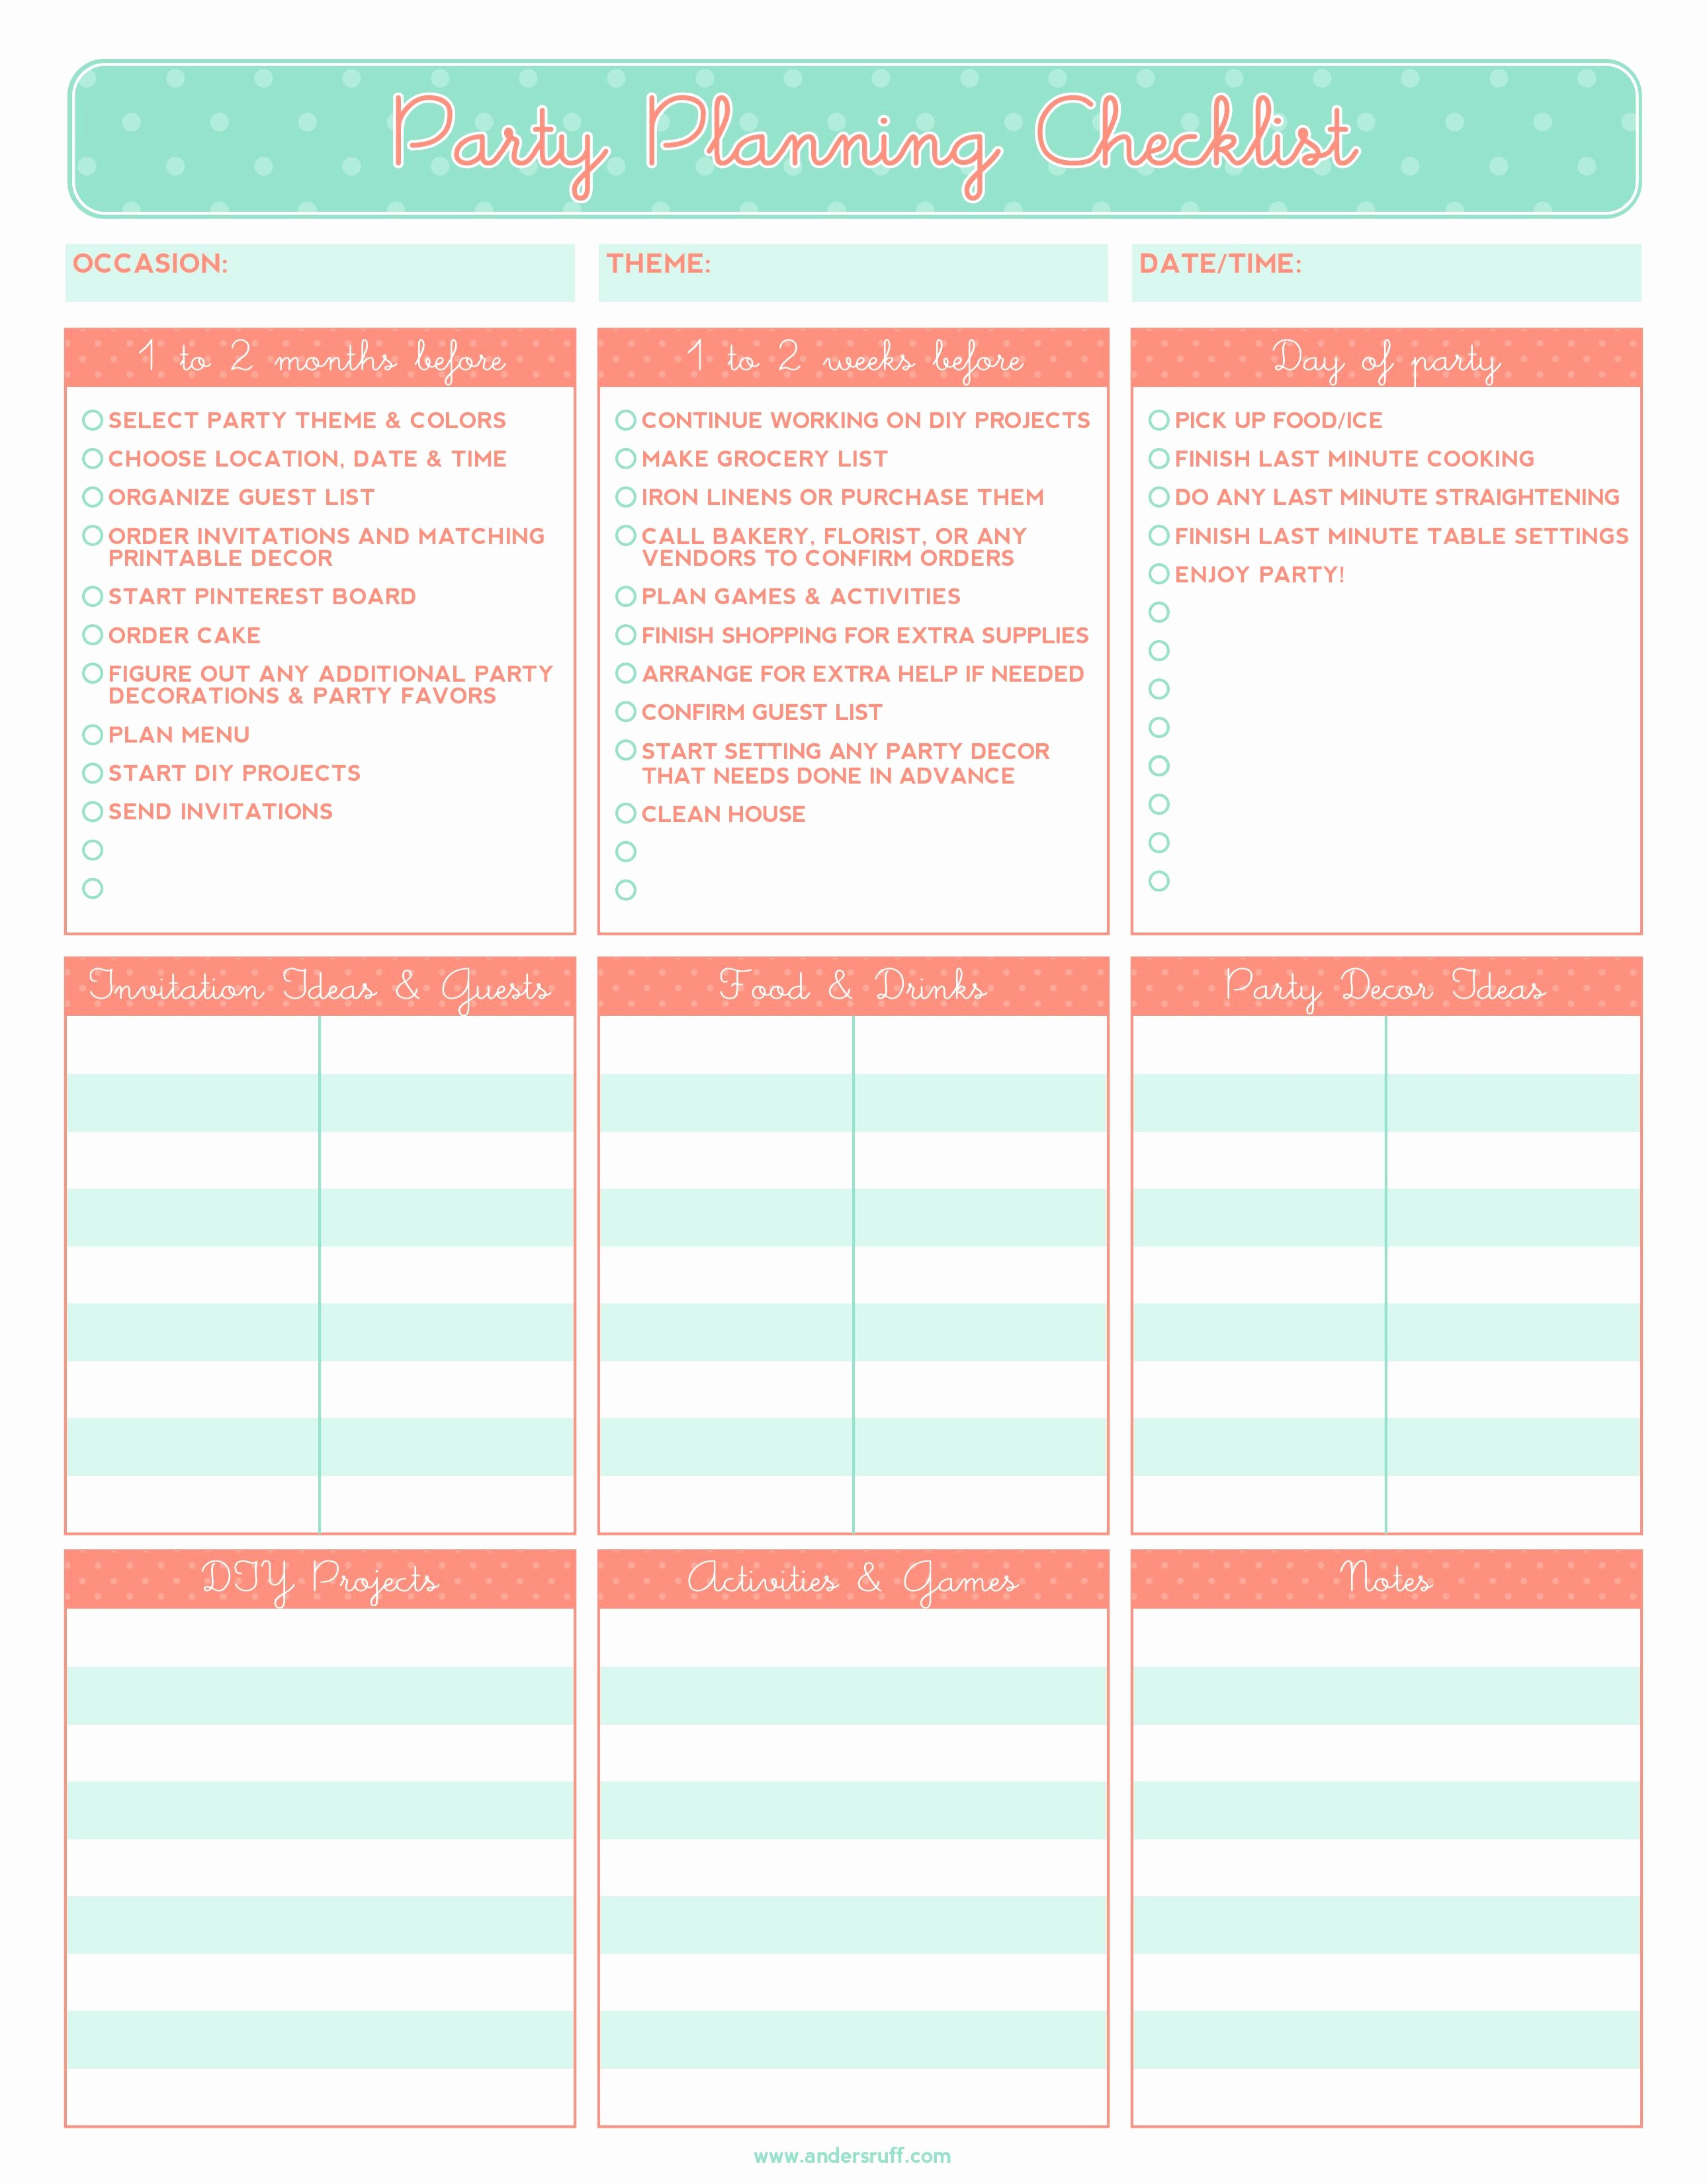 Party Planner Checklist Template Free Beautiful Free Printable Party Planning Checklist